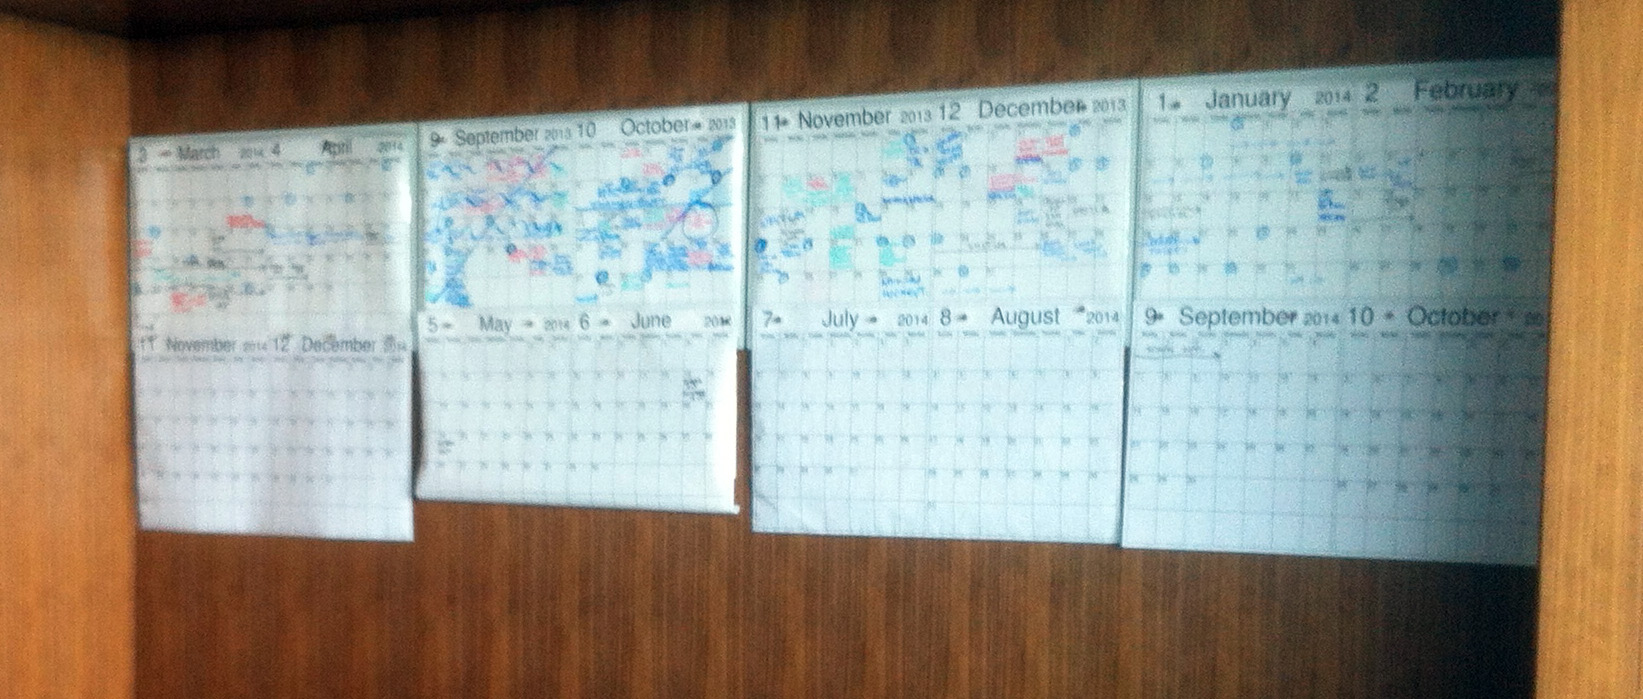 The previous calendar solution was a dry-erase poster method that was manually kept in sync with the Outlook calendars of the parents.